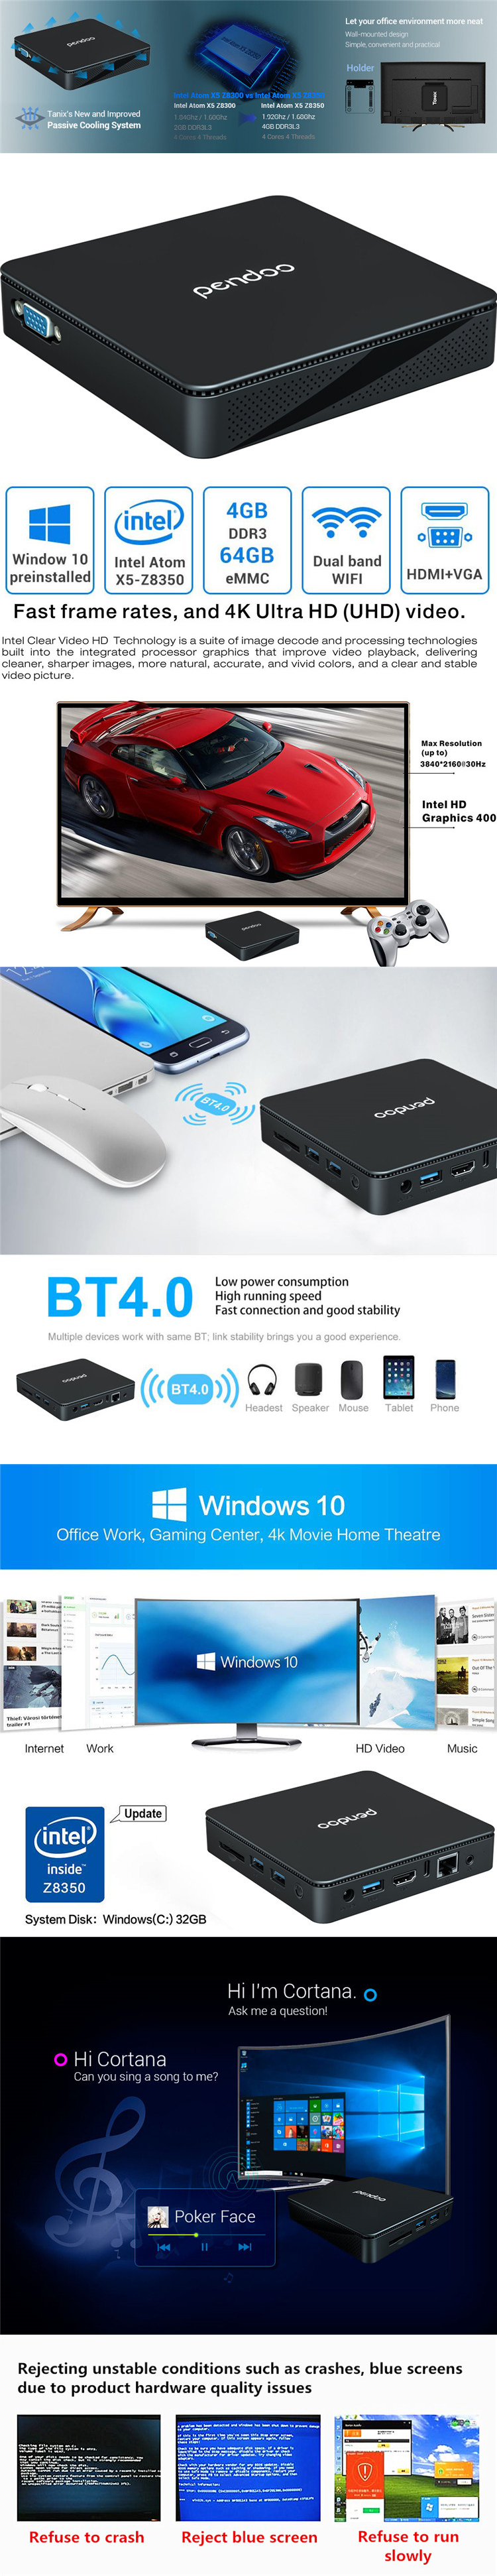 pendoo tx85 All in one mini PC Intel Z8350 4gb 64gb portable tablet WIN 10 desktop computer MINI PC